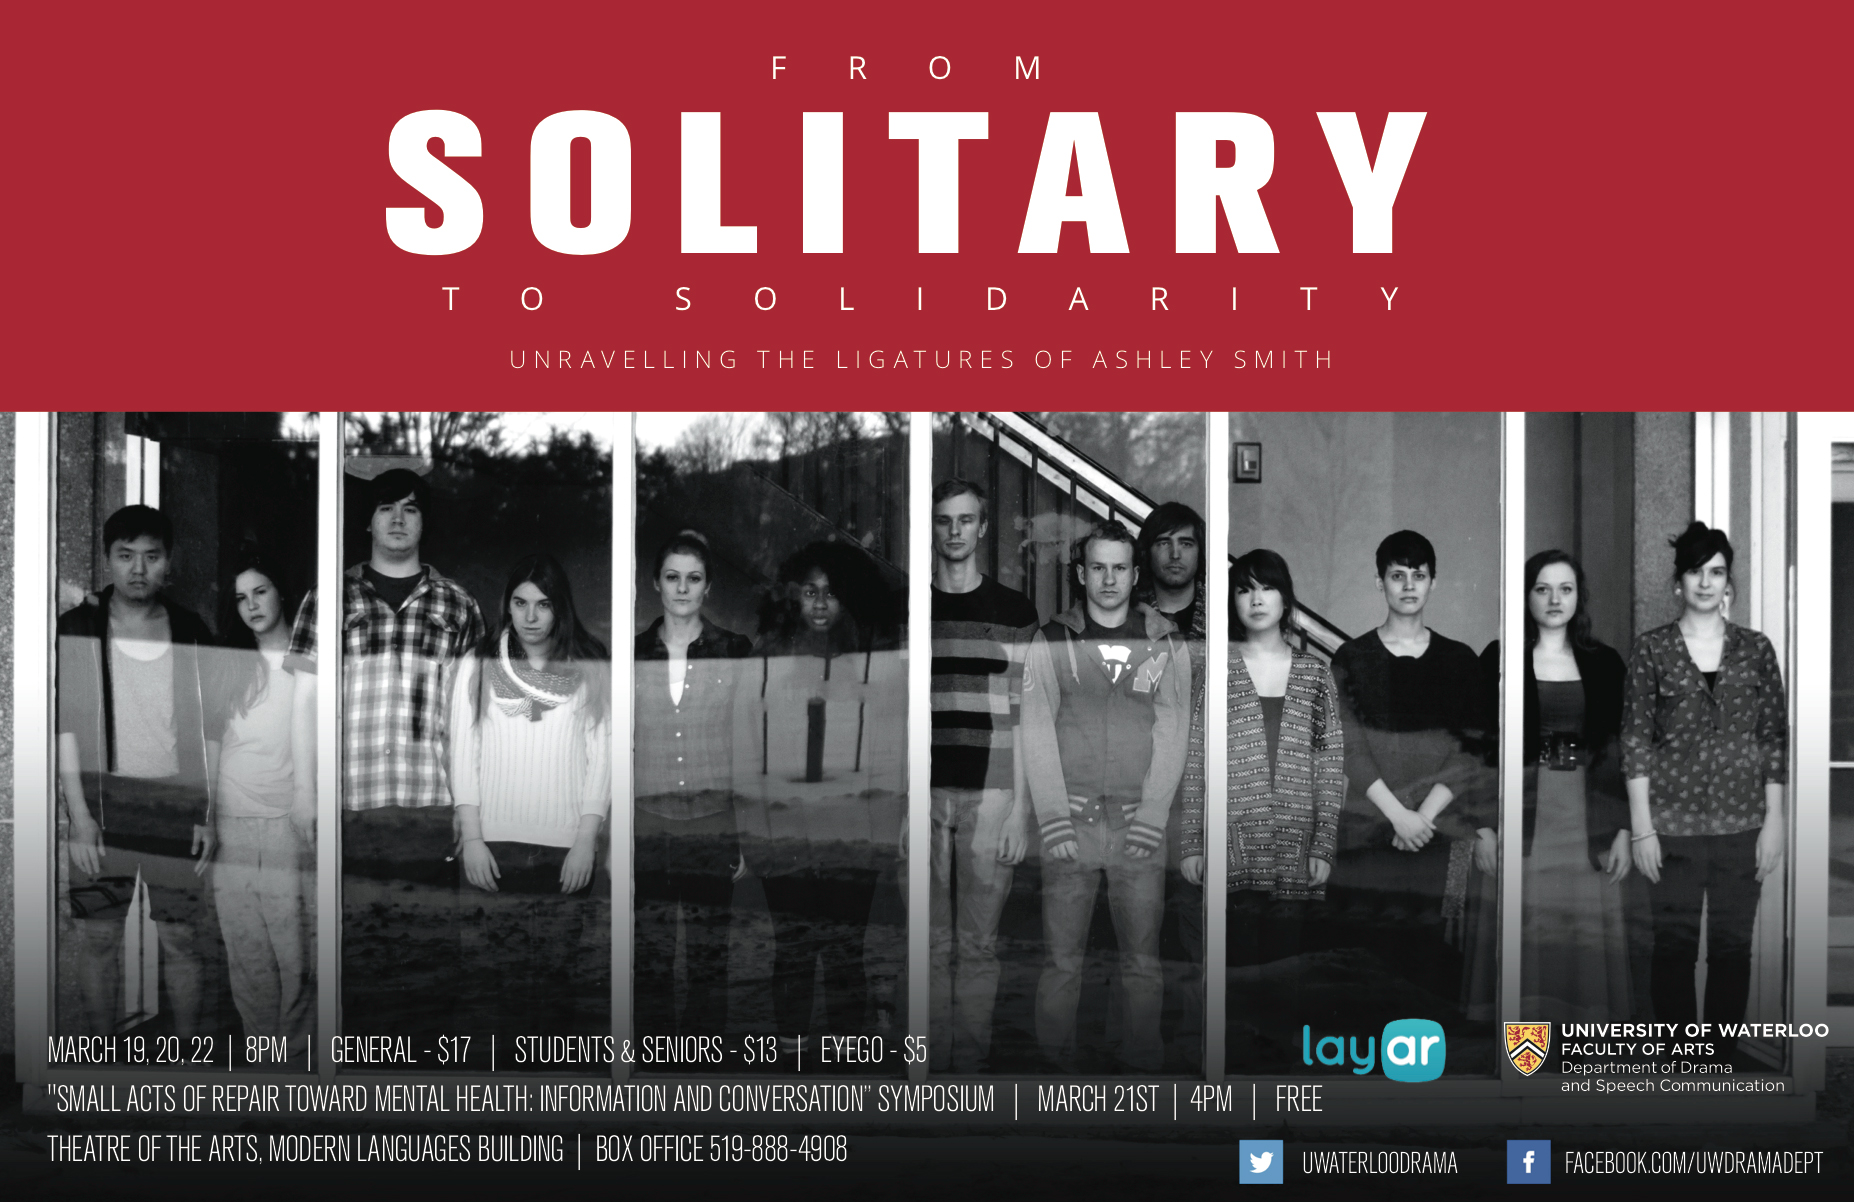 poster for the play From Solitary to Solidarity